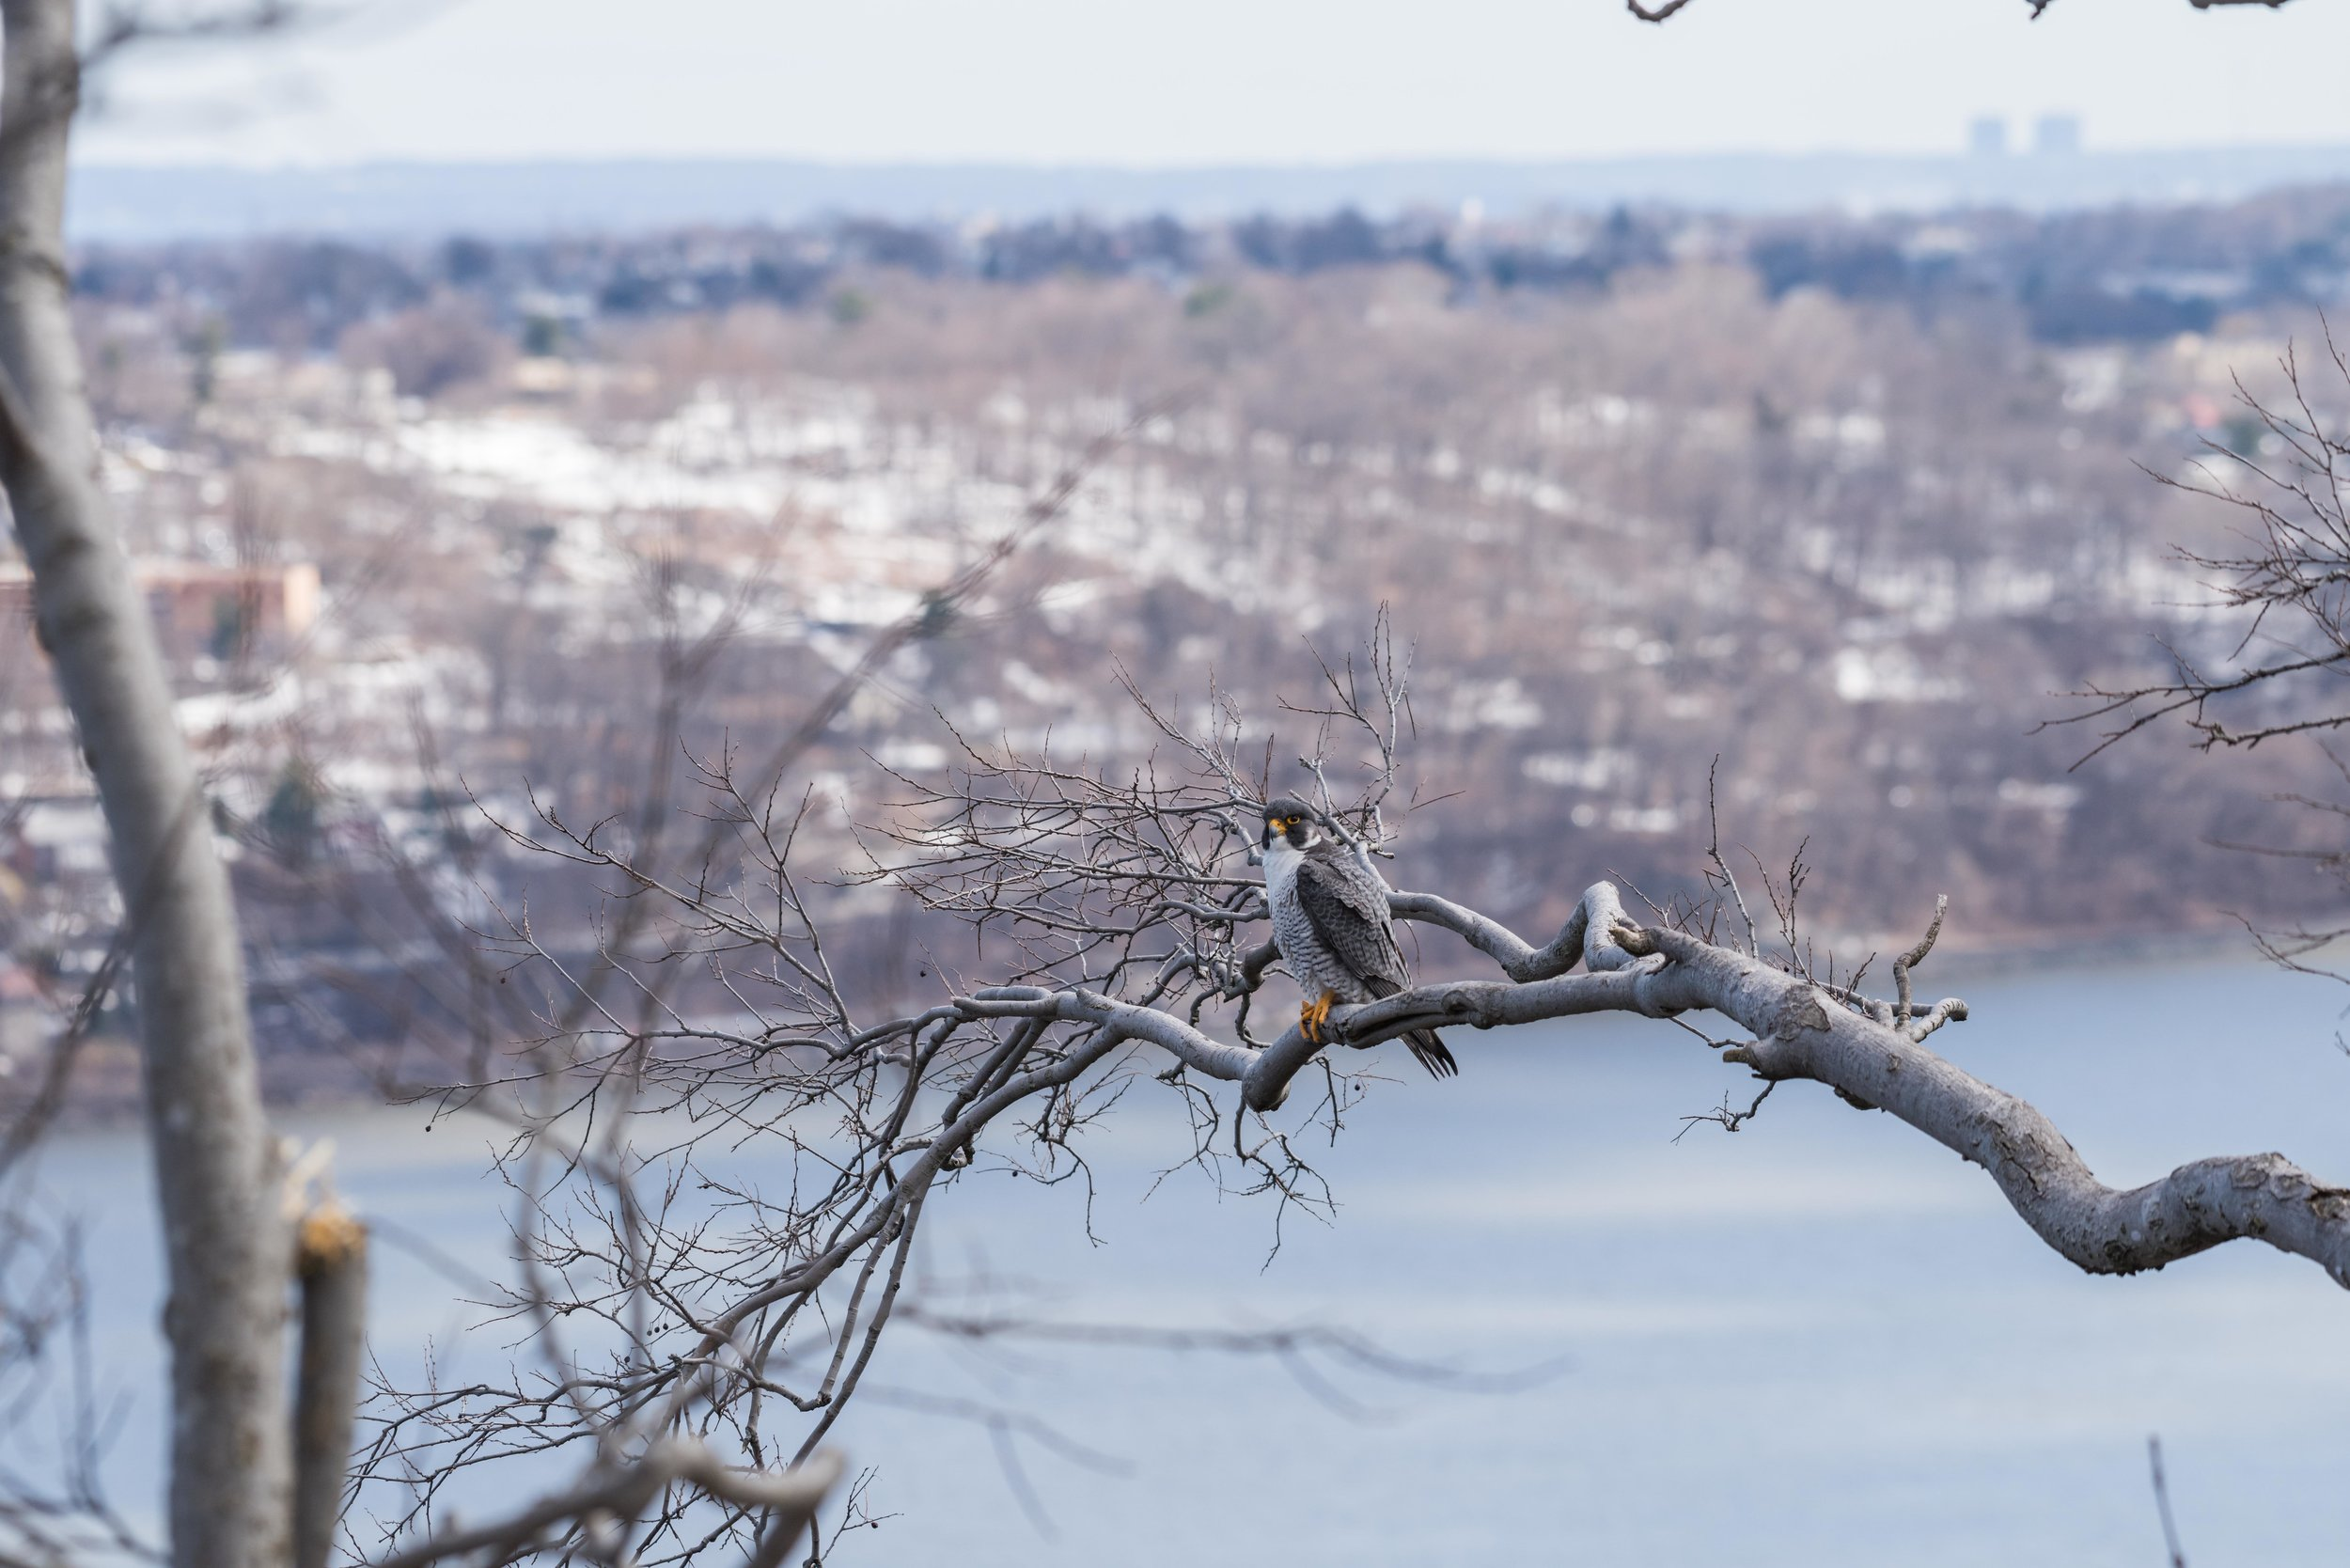 Photo taken on a full frame camera at 200mm.